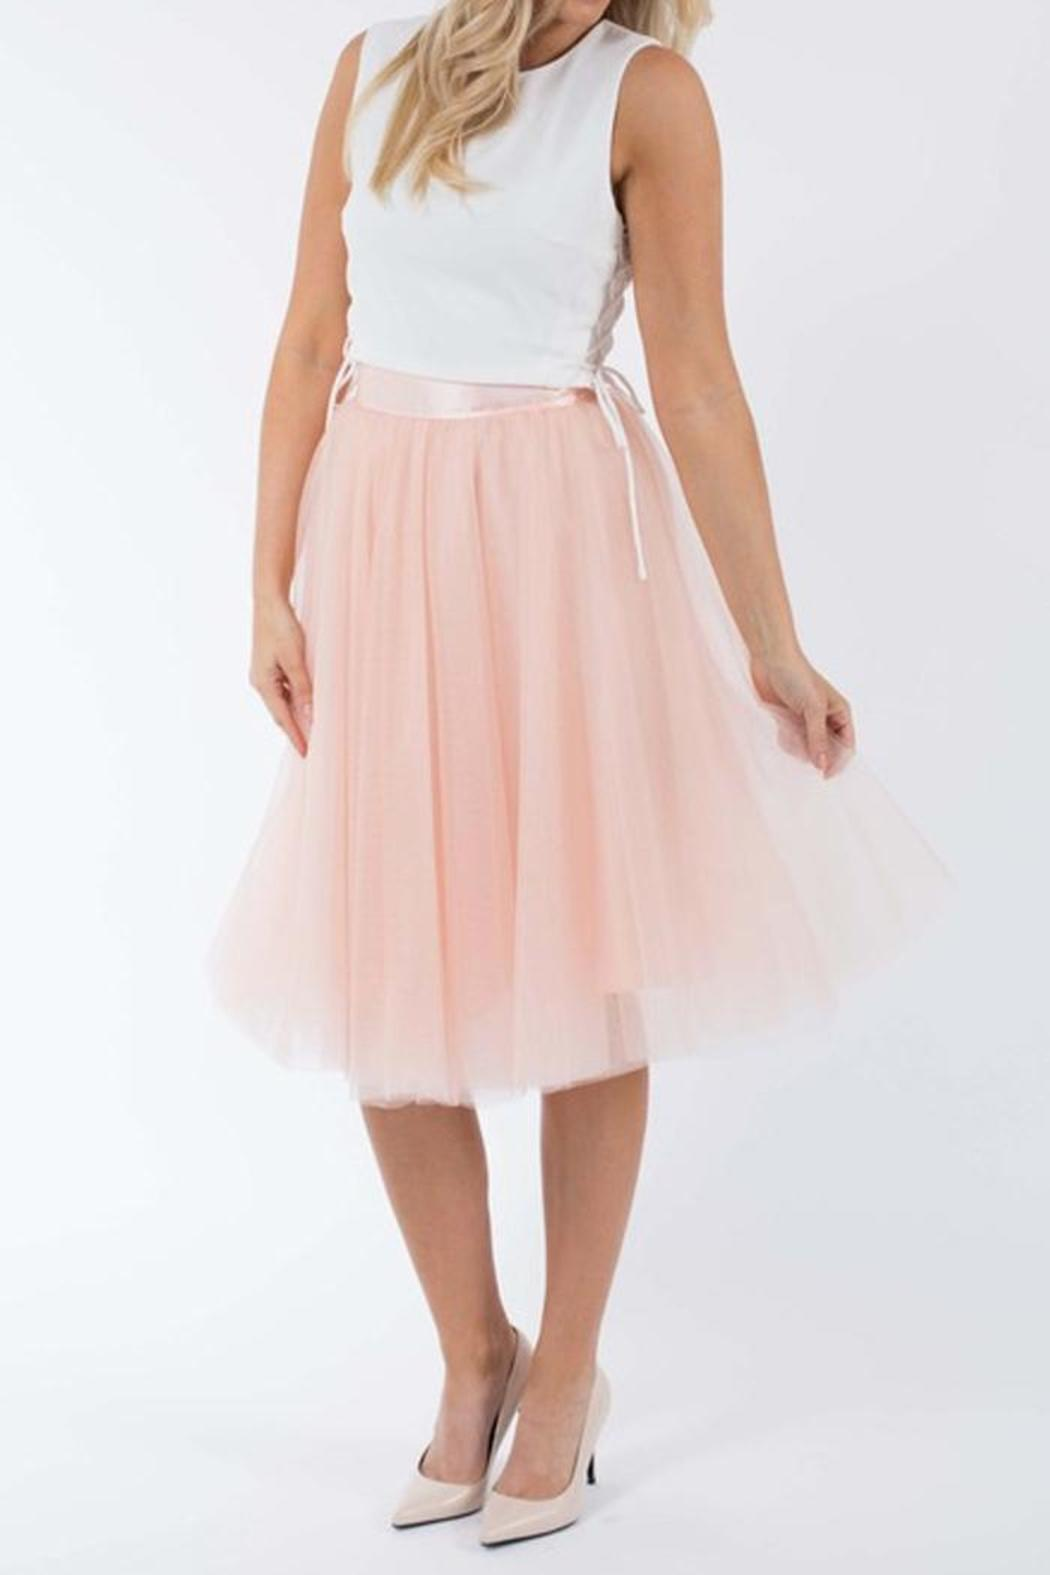 SNAZZY CHIC BOUTIQUE Blush Tulle Skirt - Main Image